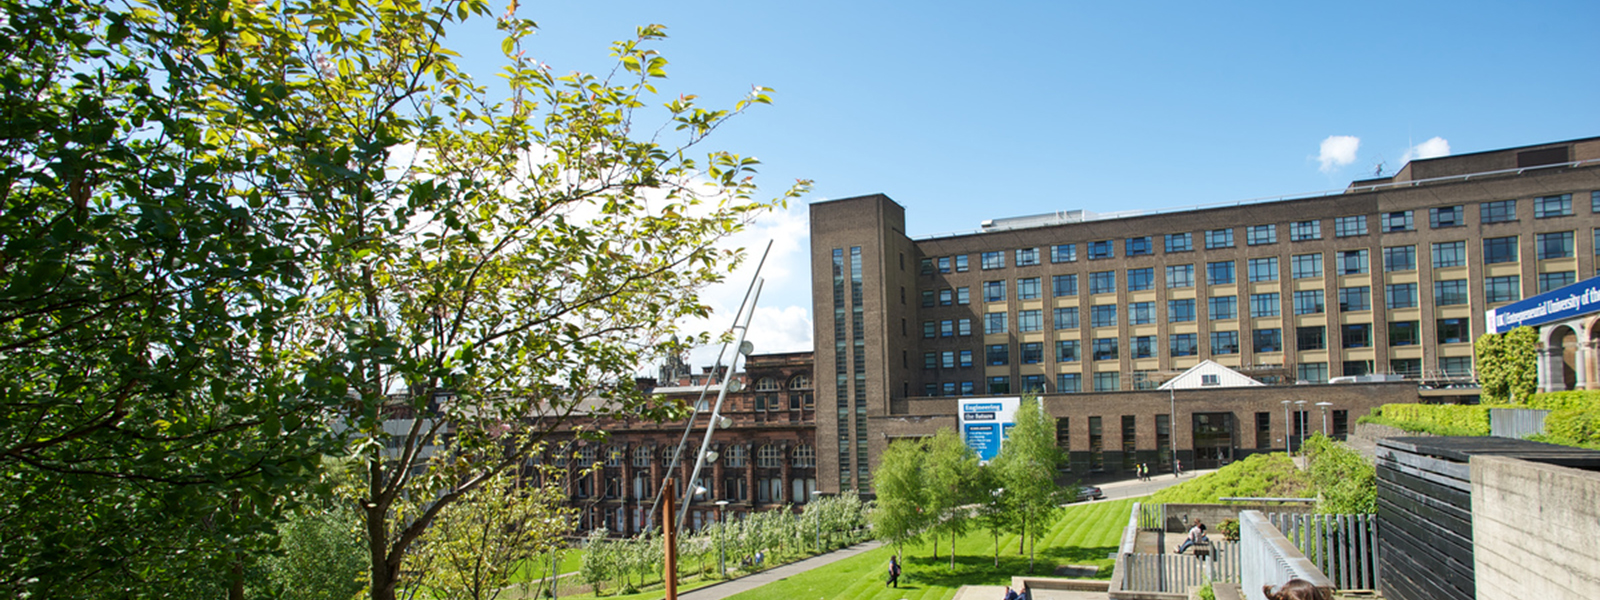 View of the University of Strathclyde's James Weir building looking across Rottenrow Gardens